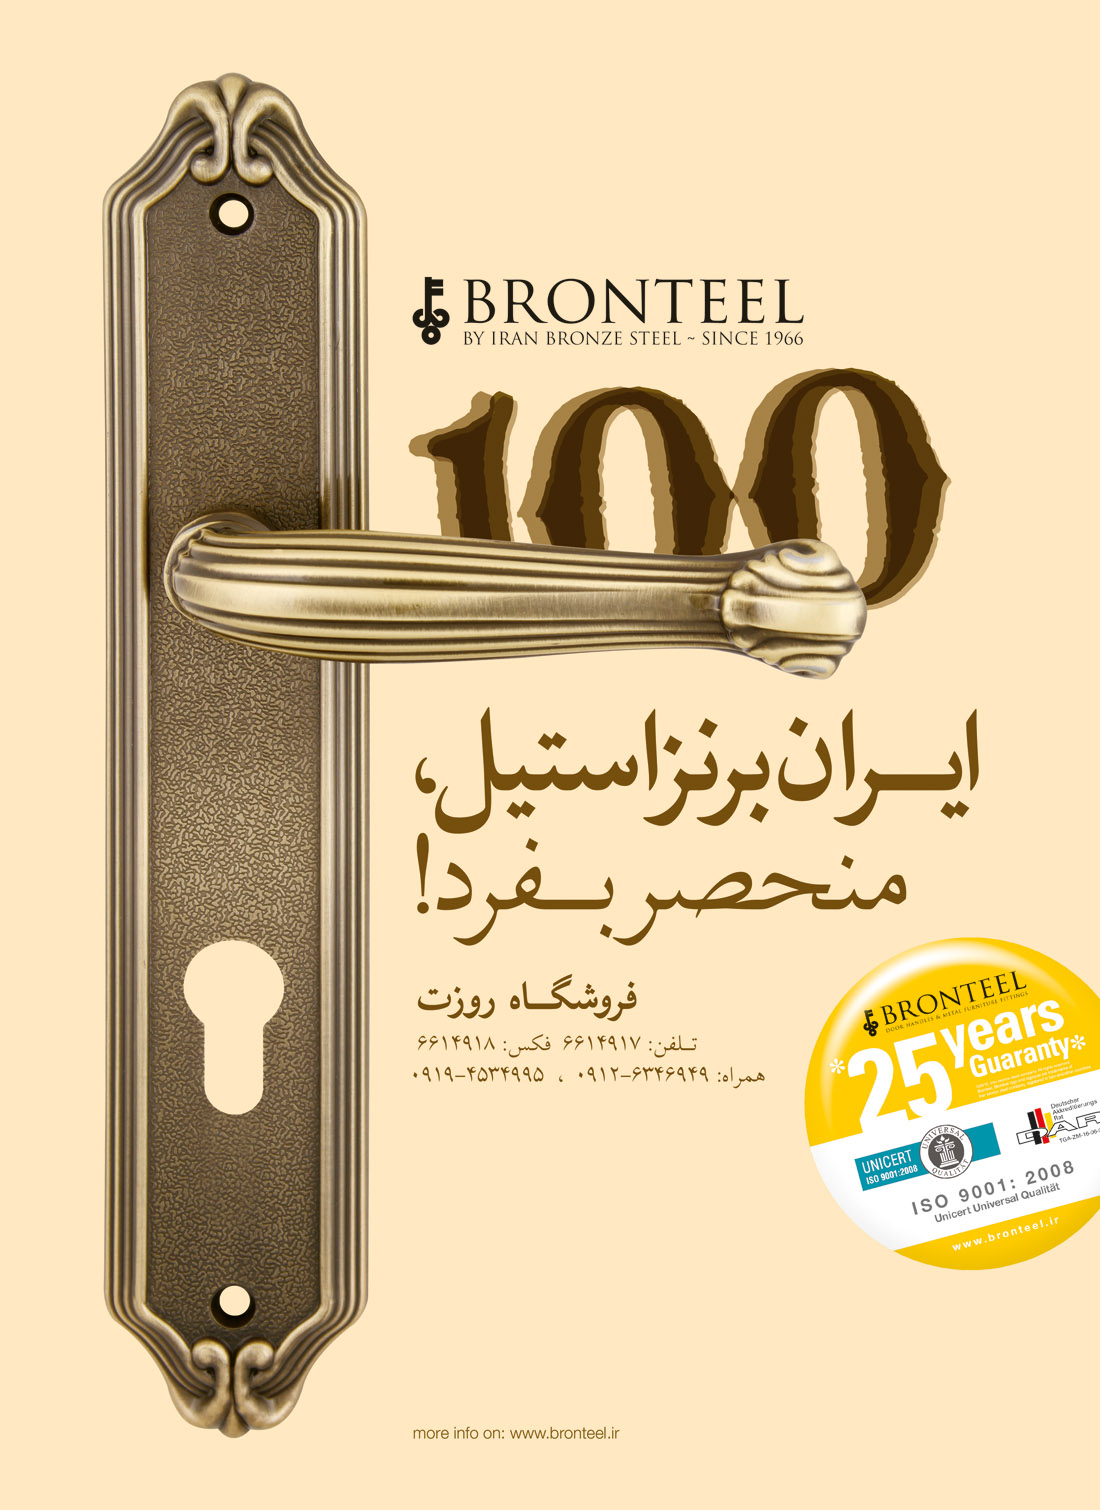 Iran Bronze Steel (13)